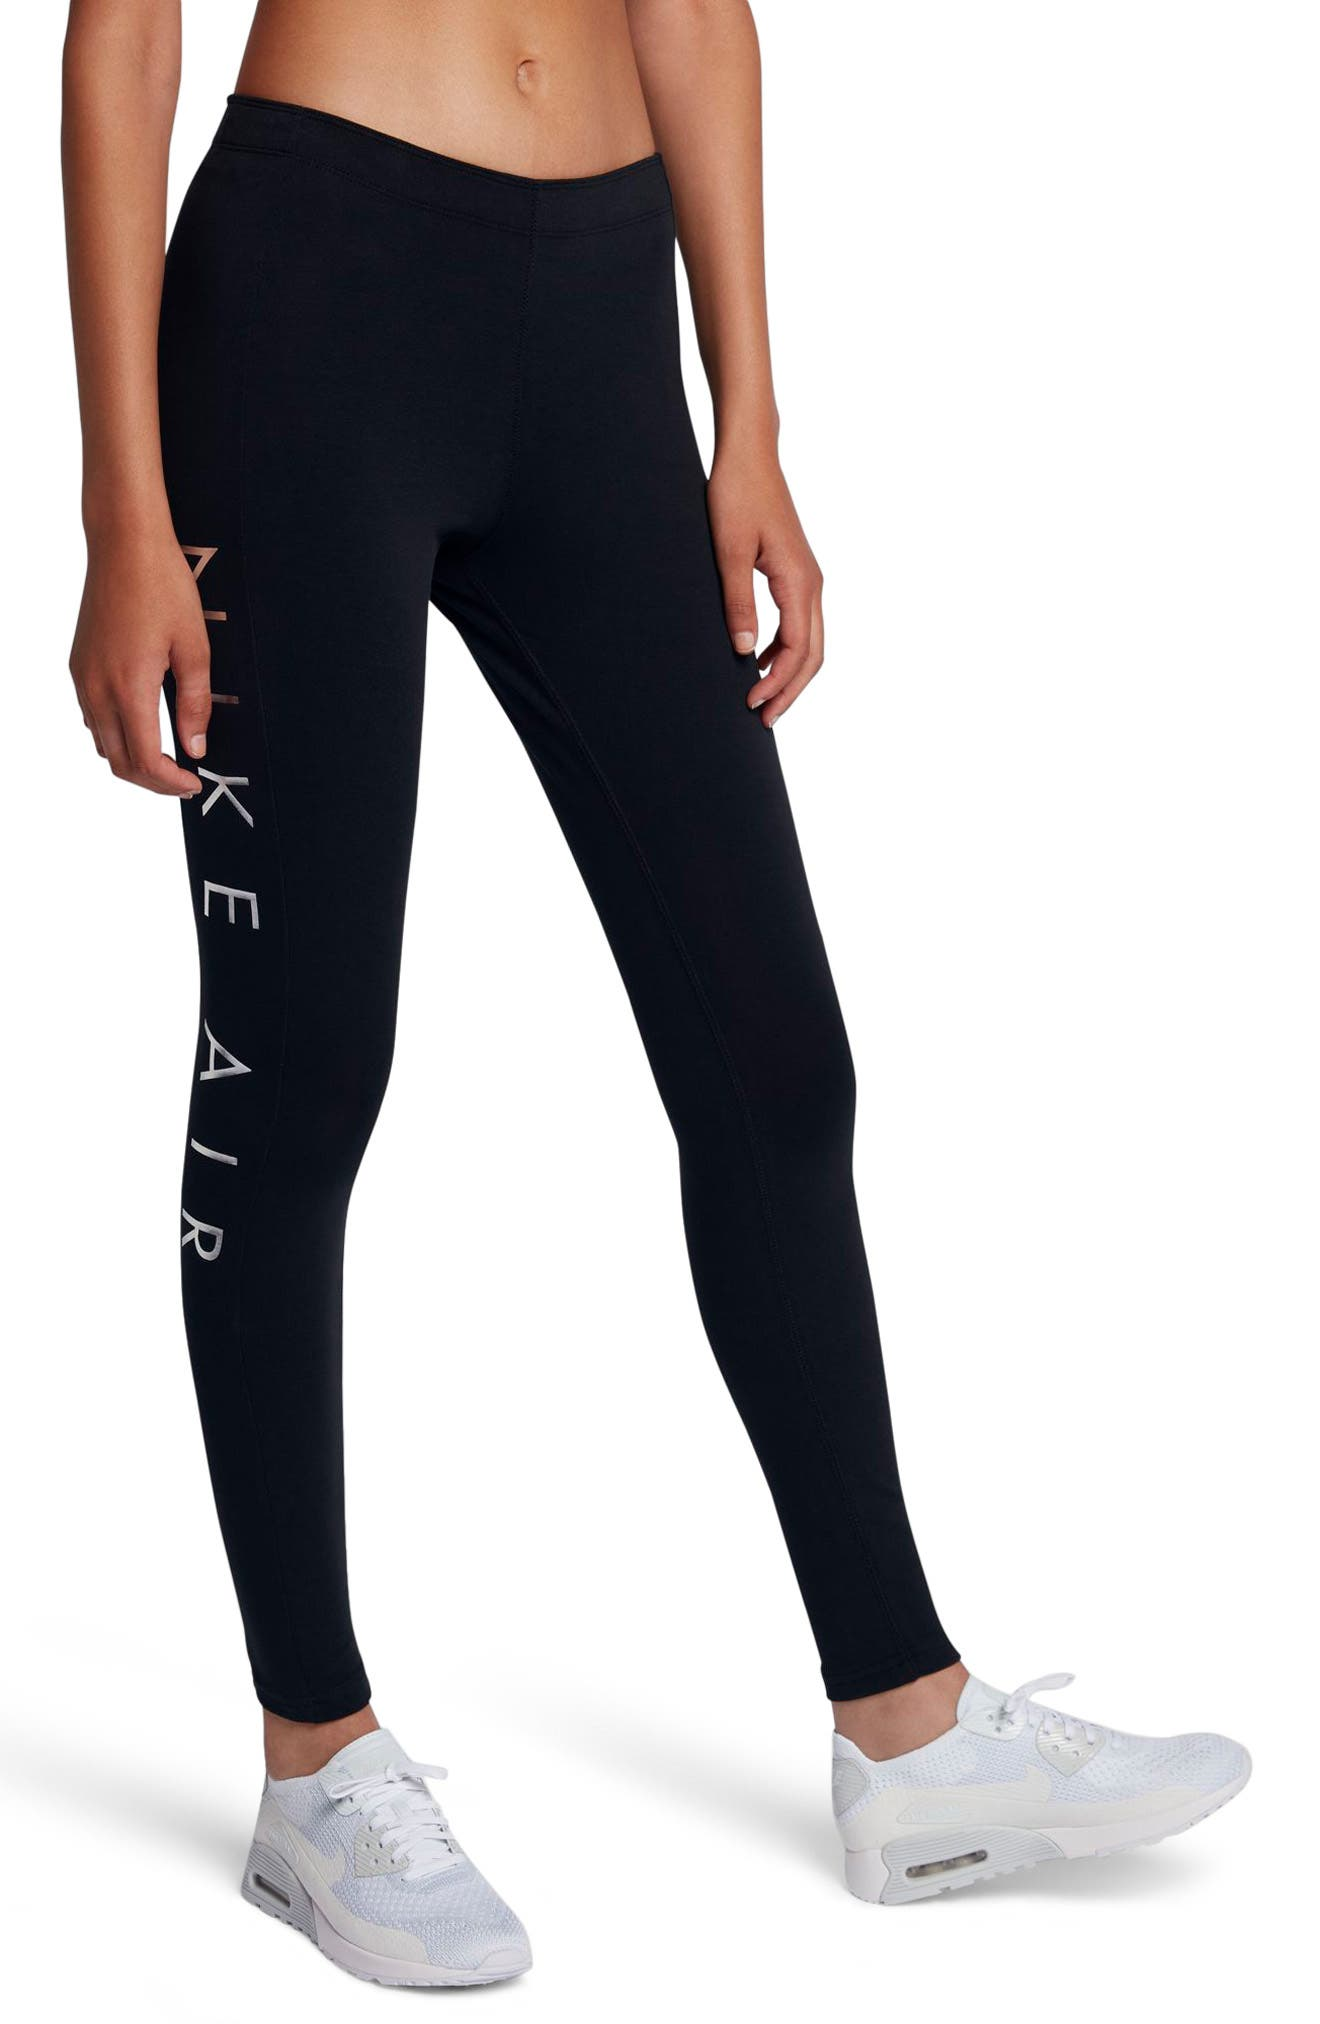 Women's NSW Air Leggings,                         Main,                         color, Black/ Black